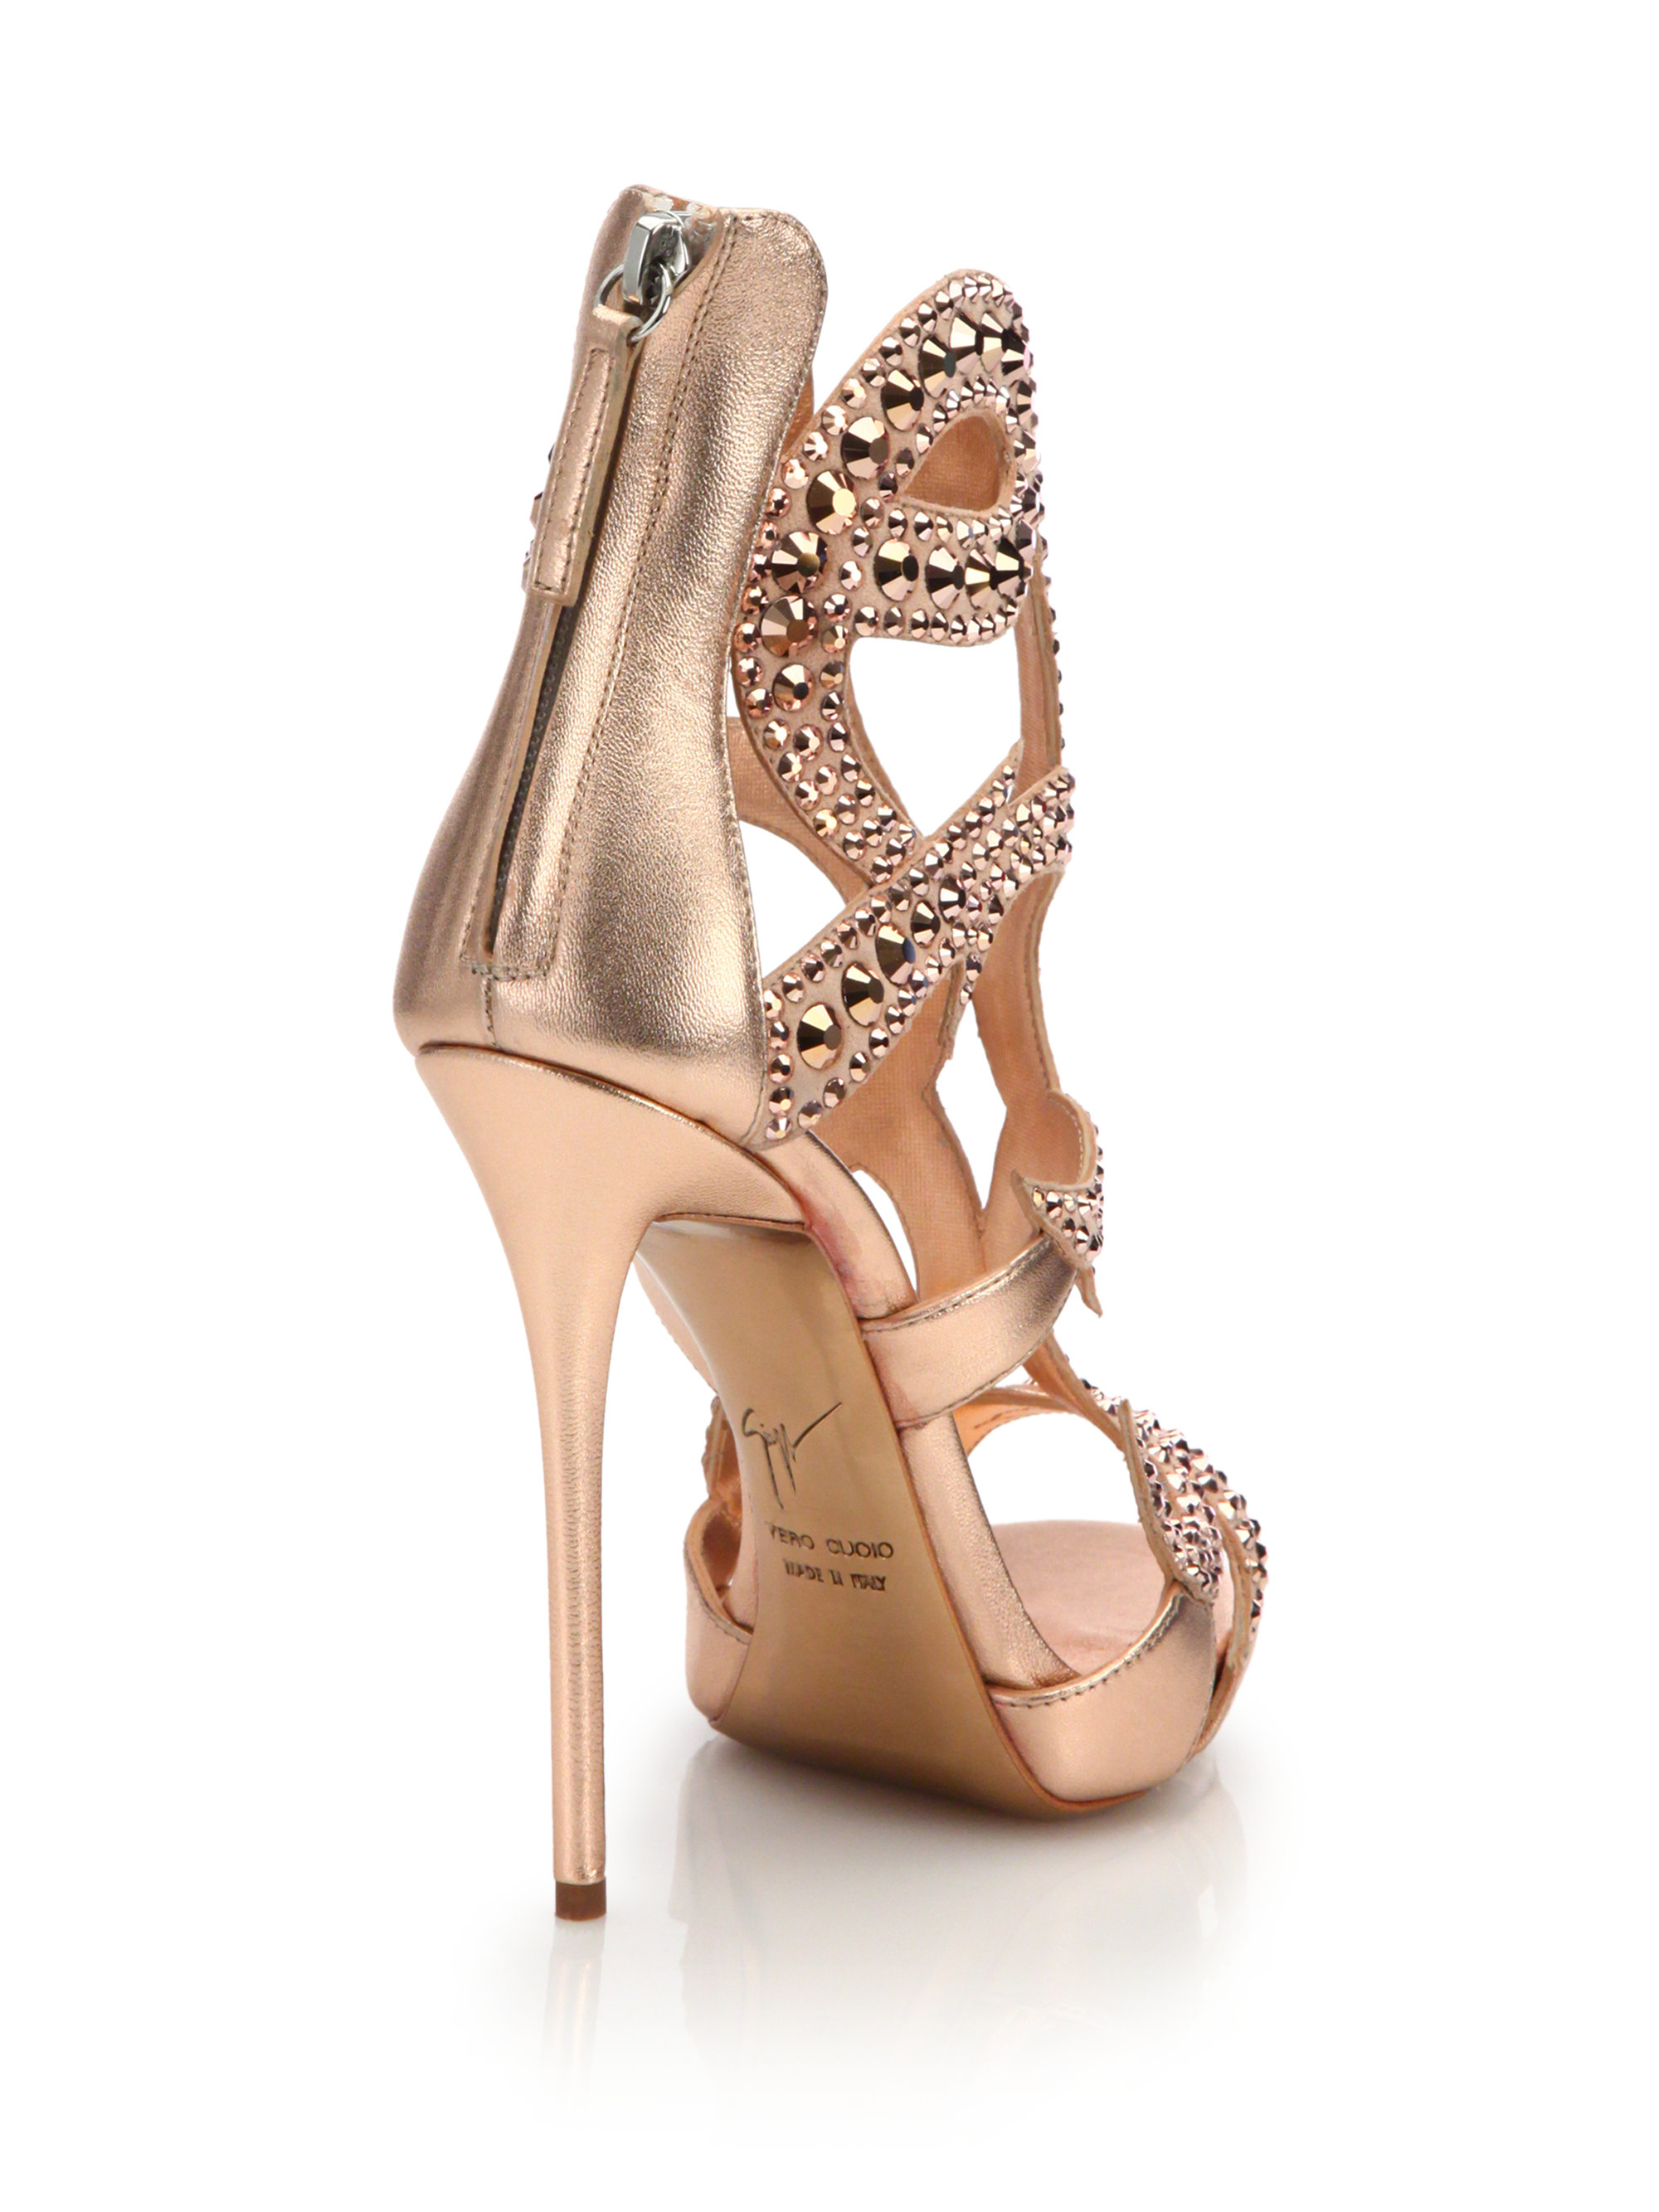 f834531c3 ... wholesale lyst giuseppe zanotti crystal embellished metallic leather  sandals in pink c6088 3980c